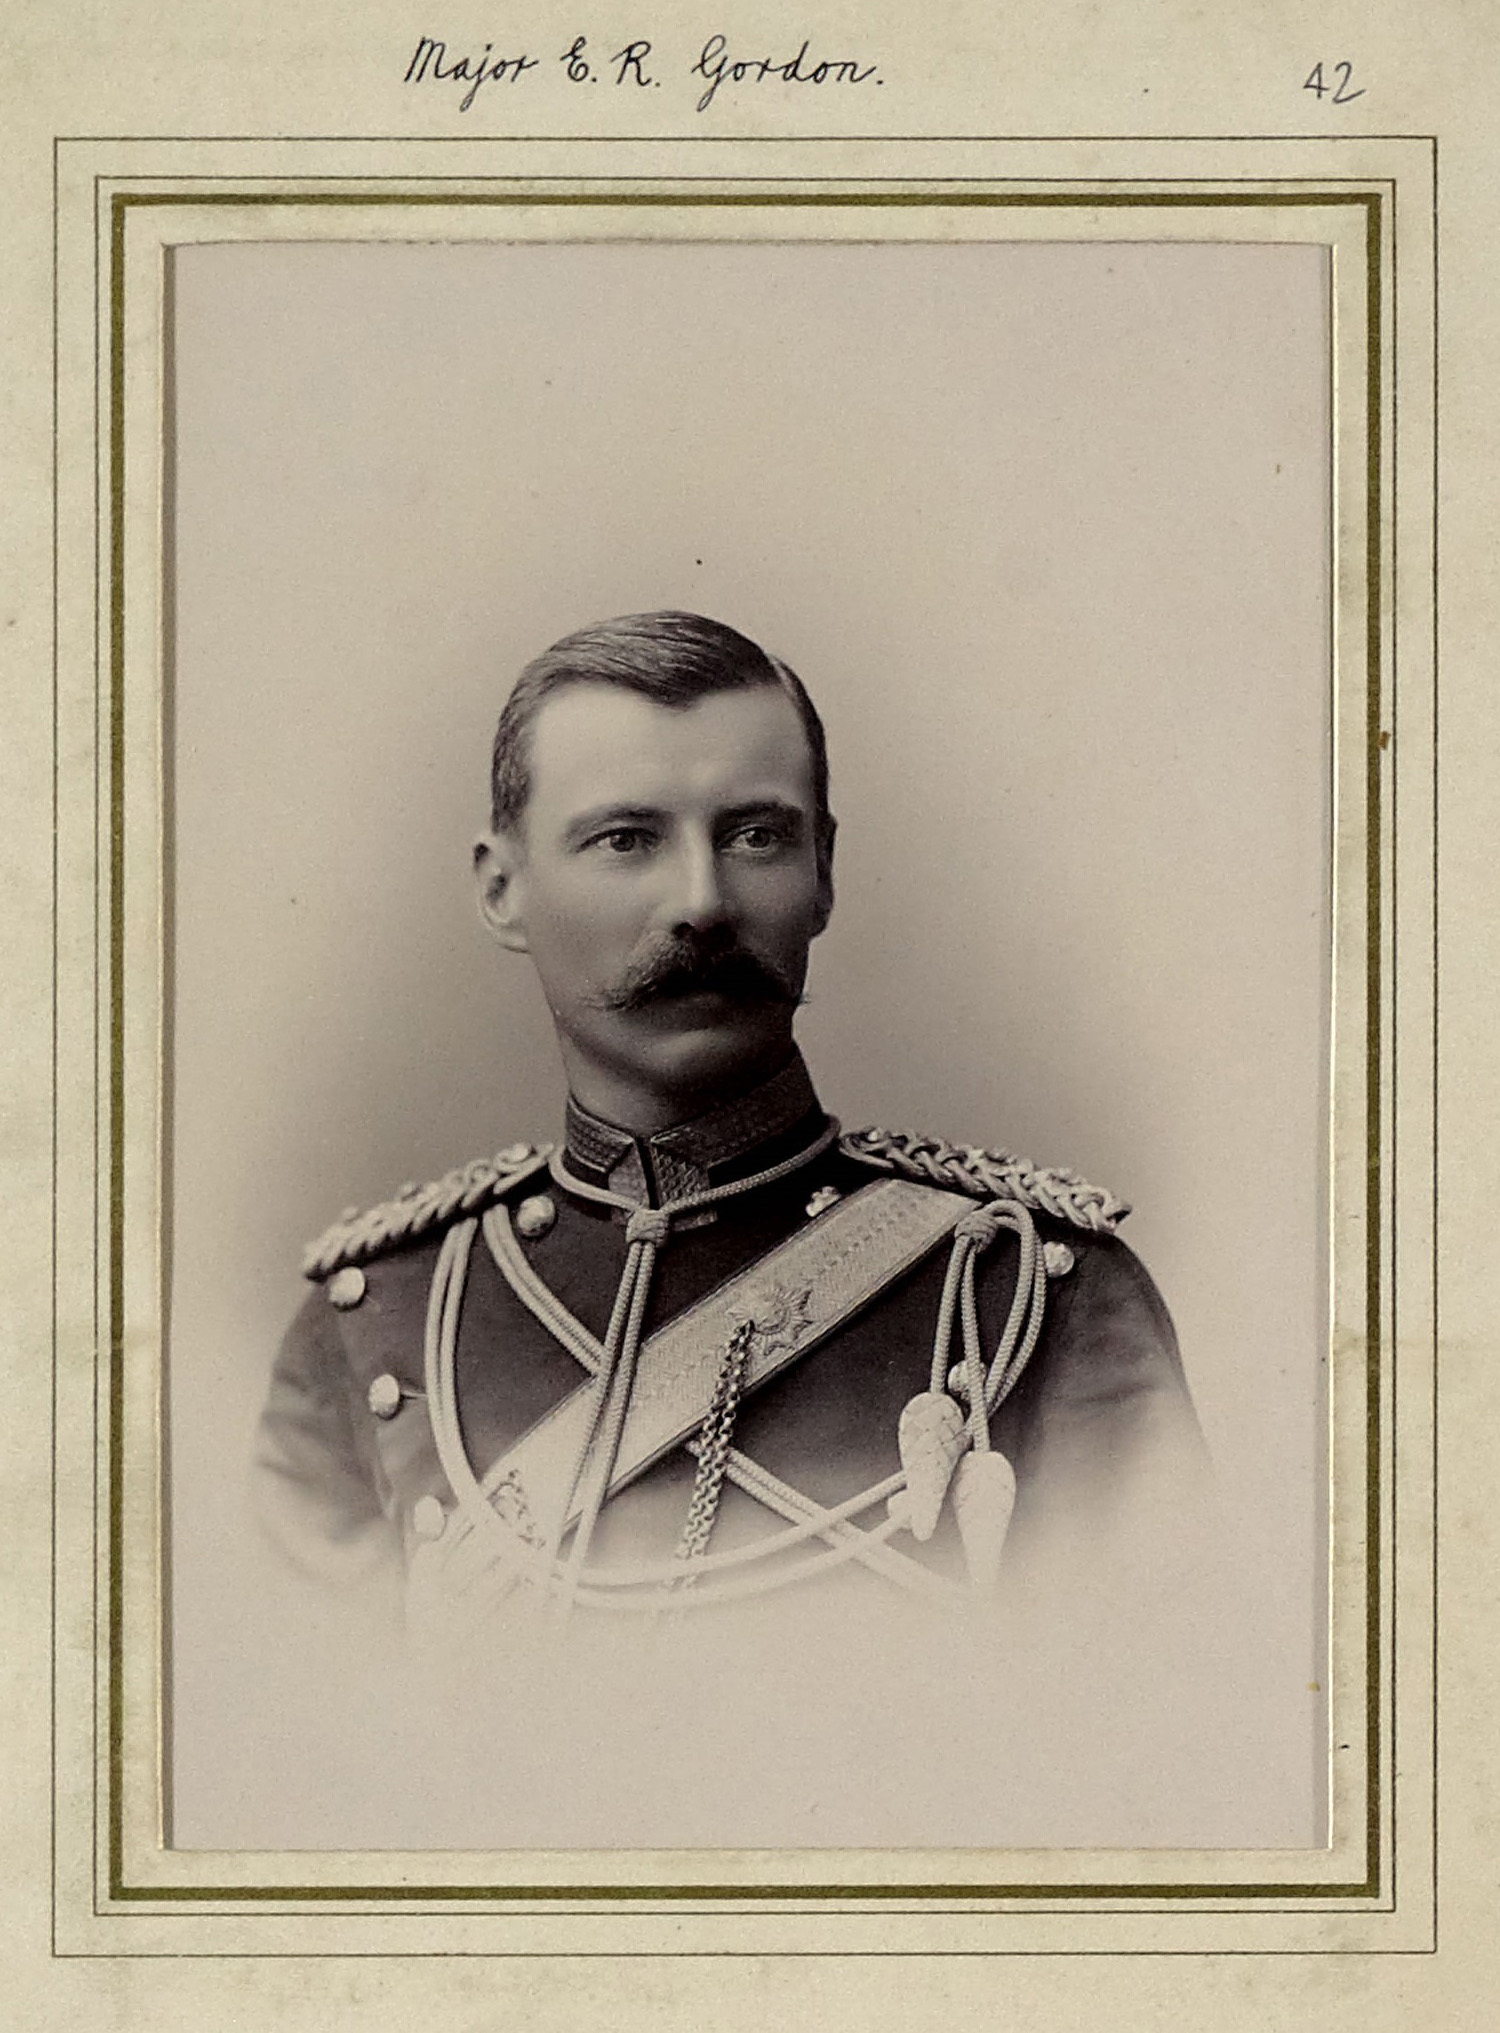 Edward Robertson Gordon as a Captain after his transfer to the 9th Lancers in 1896. The photo dates before 1902 as he does not wear his Boer War campaign medals and has the two stars of a Captain on his epaulettes, increased to three by Army reforms of 1902; as as he was in the field from 1899 to 1902 it seems most likely that it was taken during his first years with the regiment, possibly on joining them in England in 1896 (copyright 9th/12th Lancers Regimental Museum, Accession No 2090-16-42).